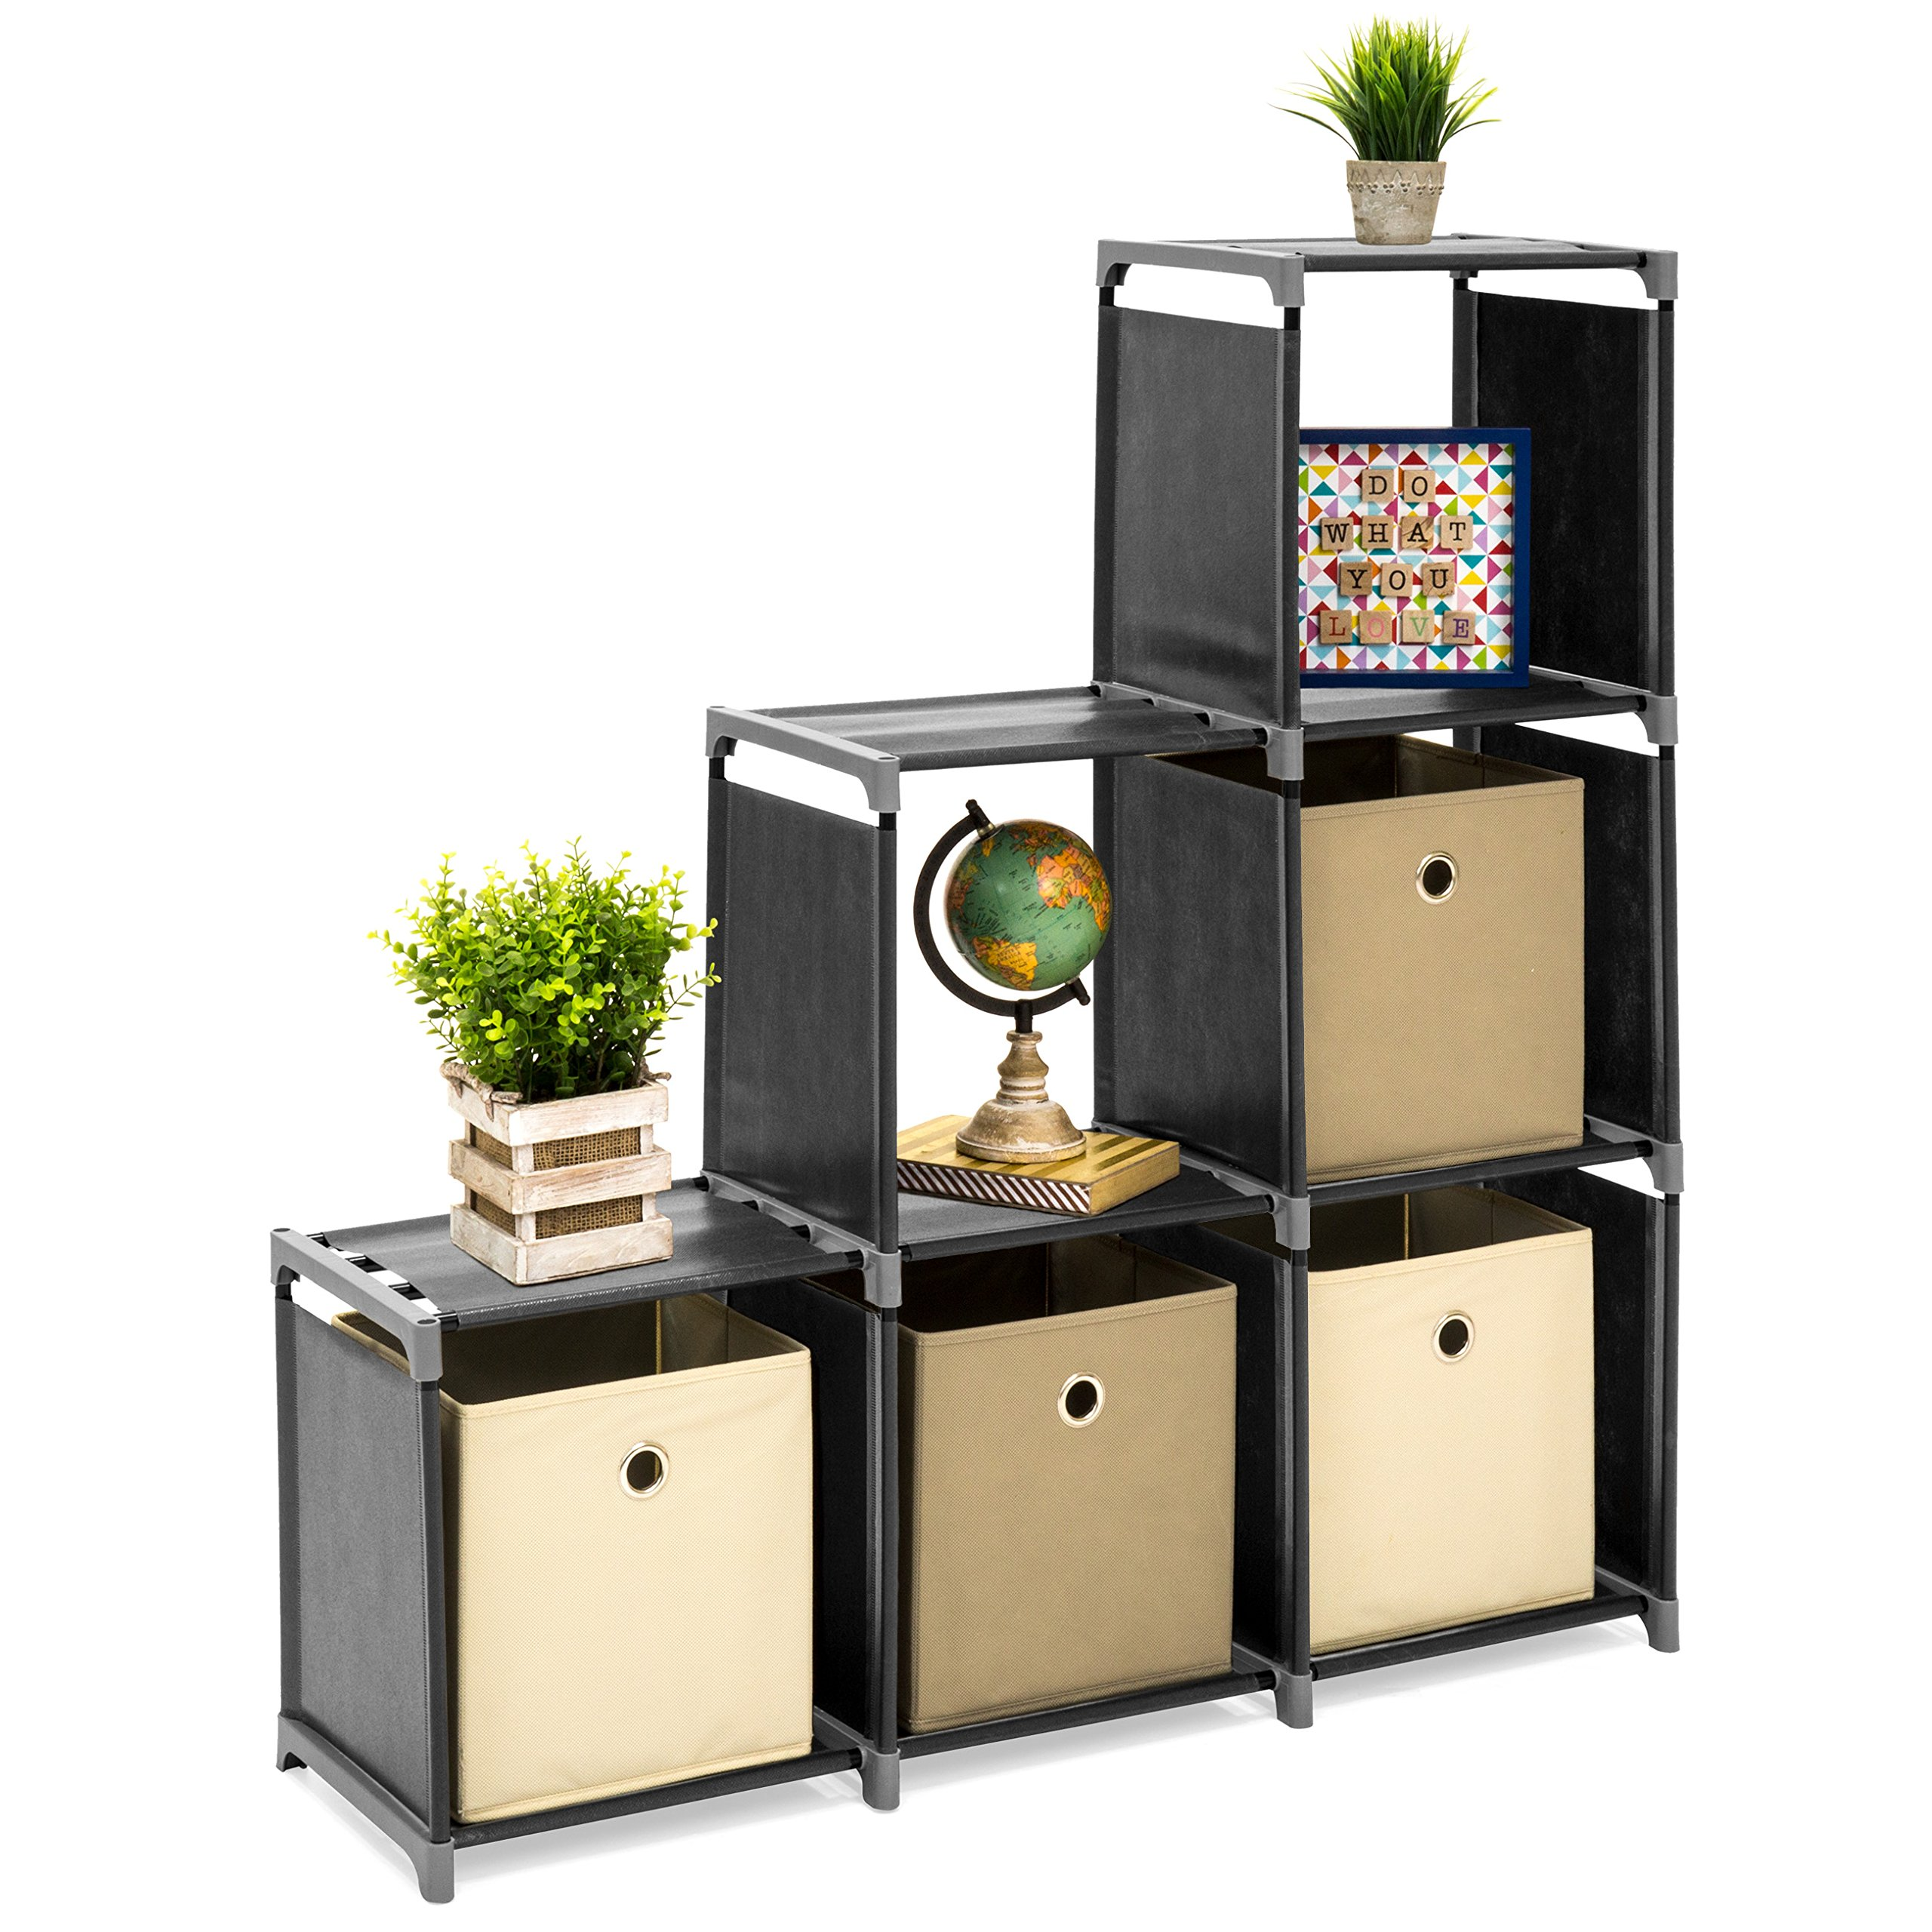 Best Choice Products 6-Drawer Multi-Purpose Shelving Cubby Storage Cabinet (Black) by Best Choice Products (Image #1)